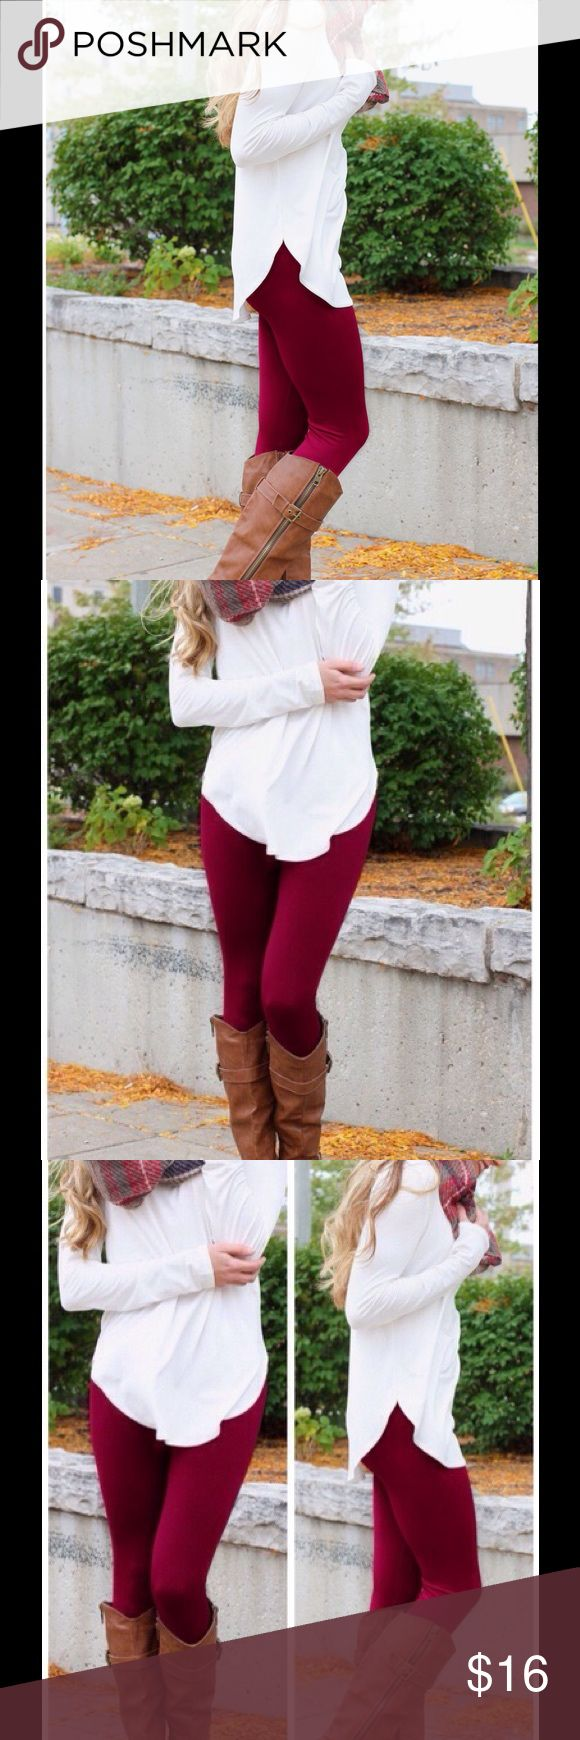 Wine Fleece Leggings Tummy Tuck Control High Waist High waist fleece leggings with tummy tuck control. Comes in Wine, Black, & Grey. Don't miss out! This listing is for Wine. View our listings for other colors. Pants Leggings